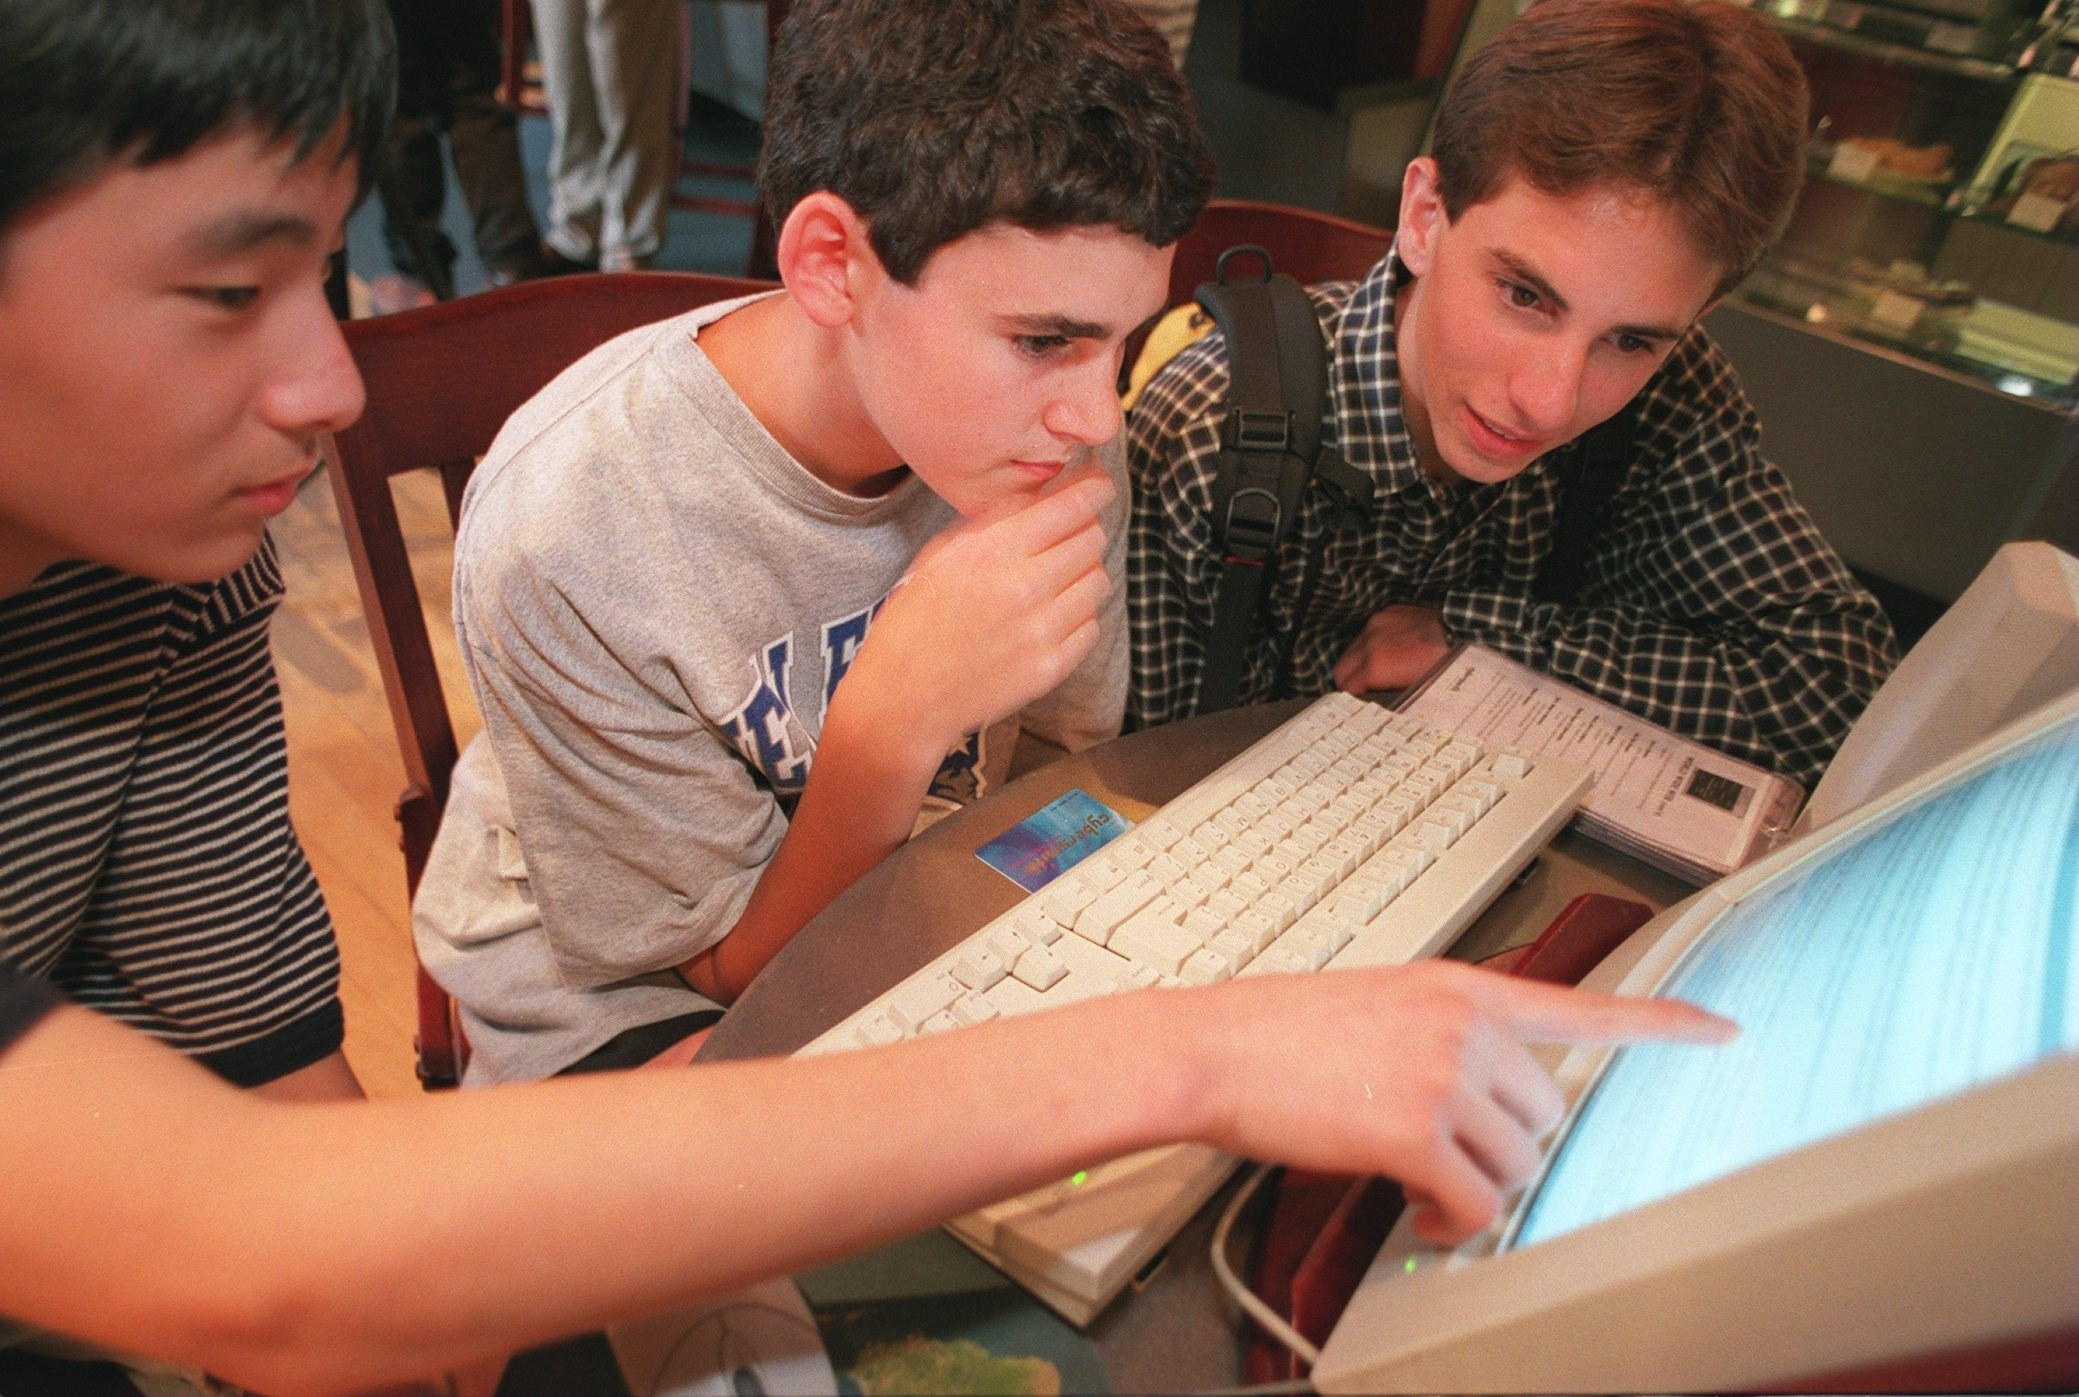 Three teens sitting in front of a desktop computer